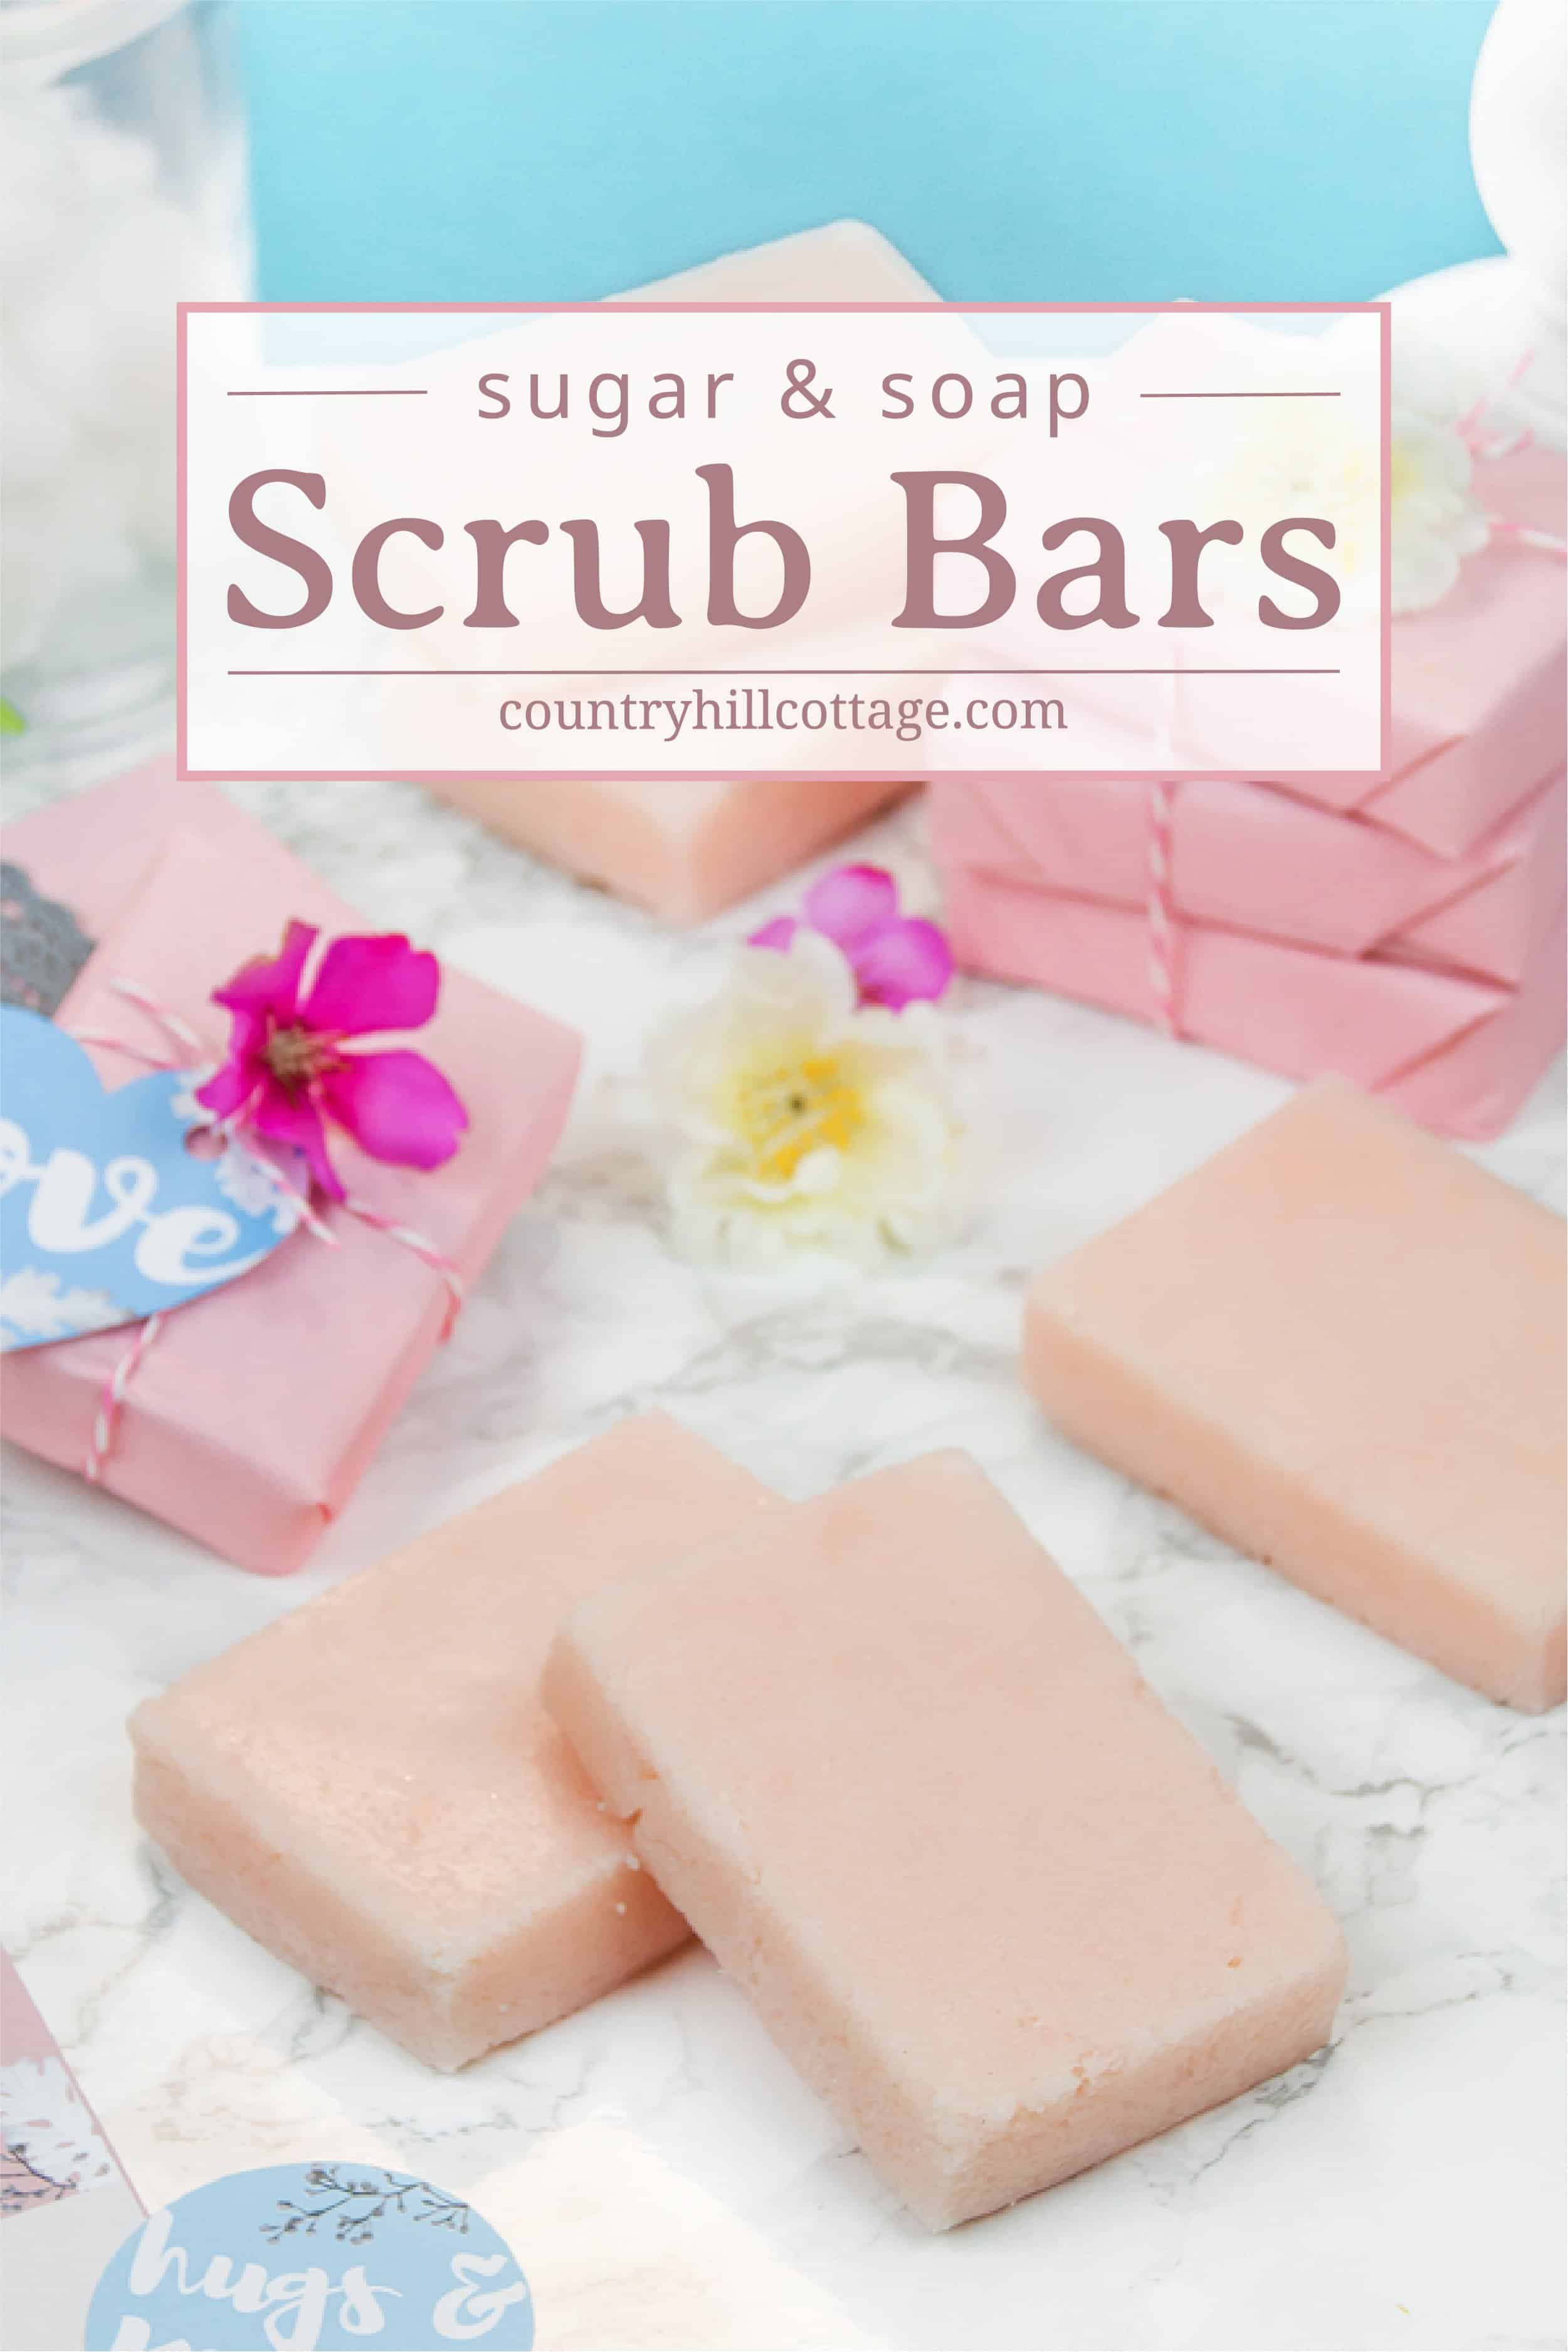 Diy Soap Essential Oils Sugar Soap Scrub Bars With Essential Oils Country Hill Cottage